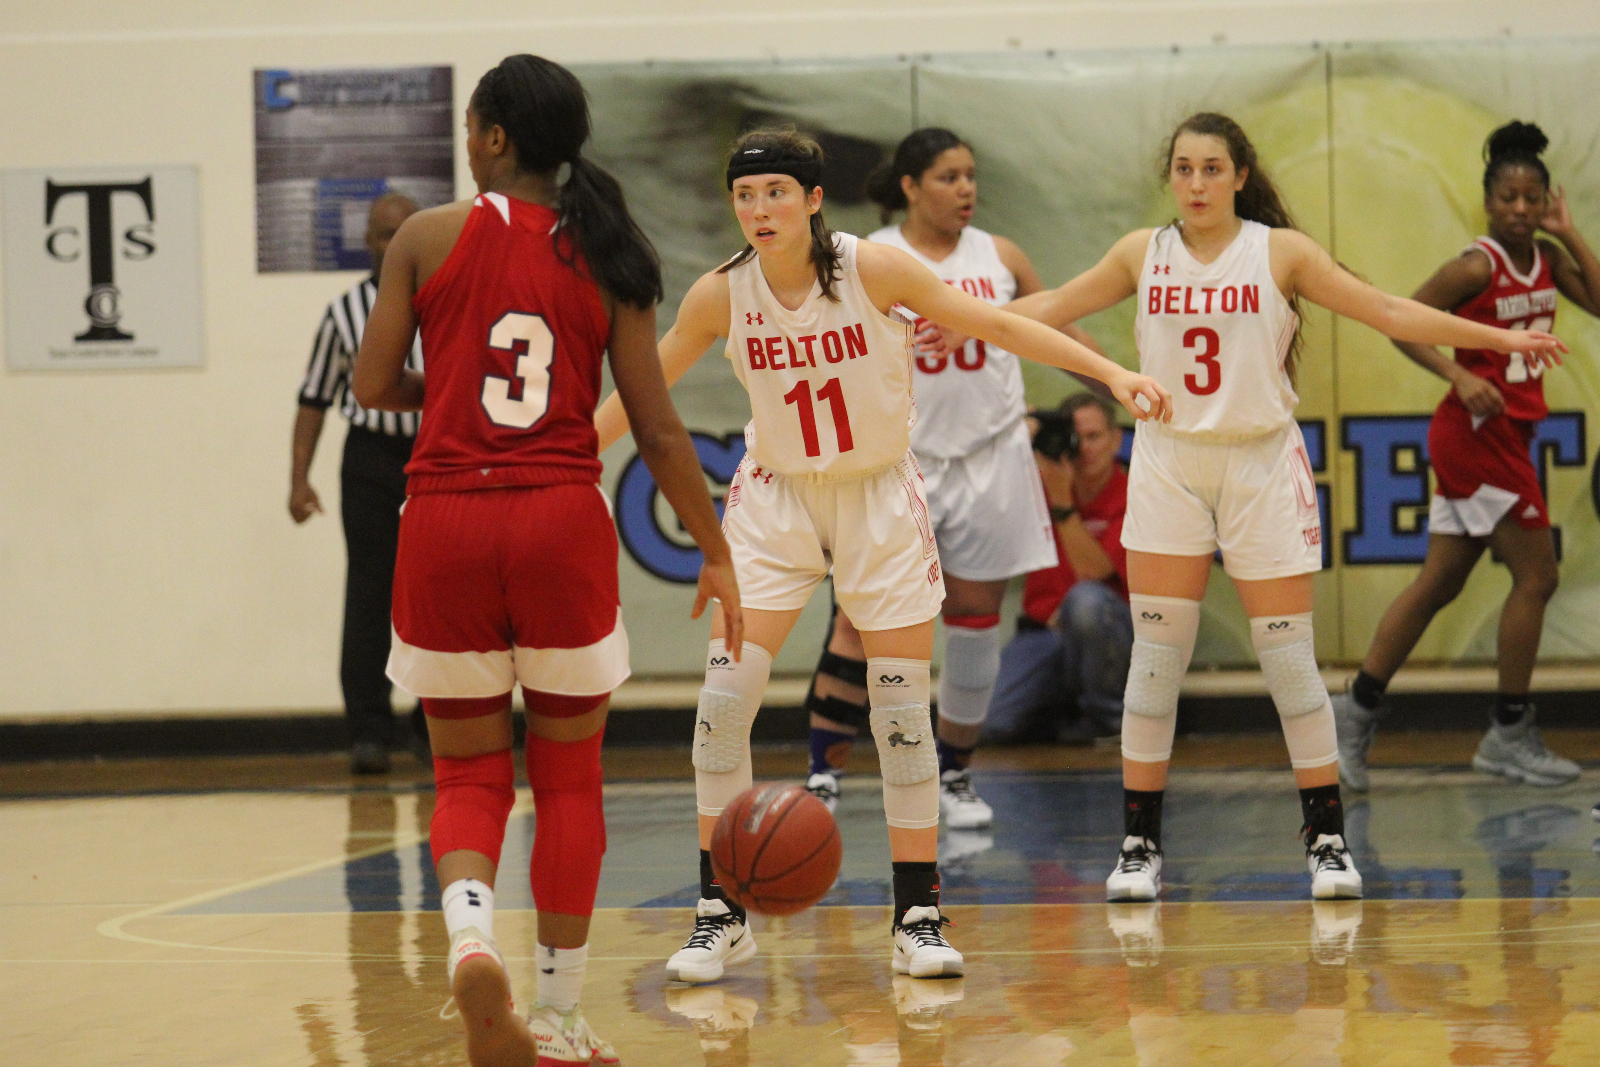 Lady Tigers fall in tight game to Shoemaker, 32-26